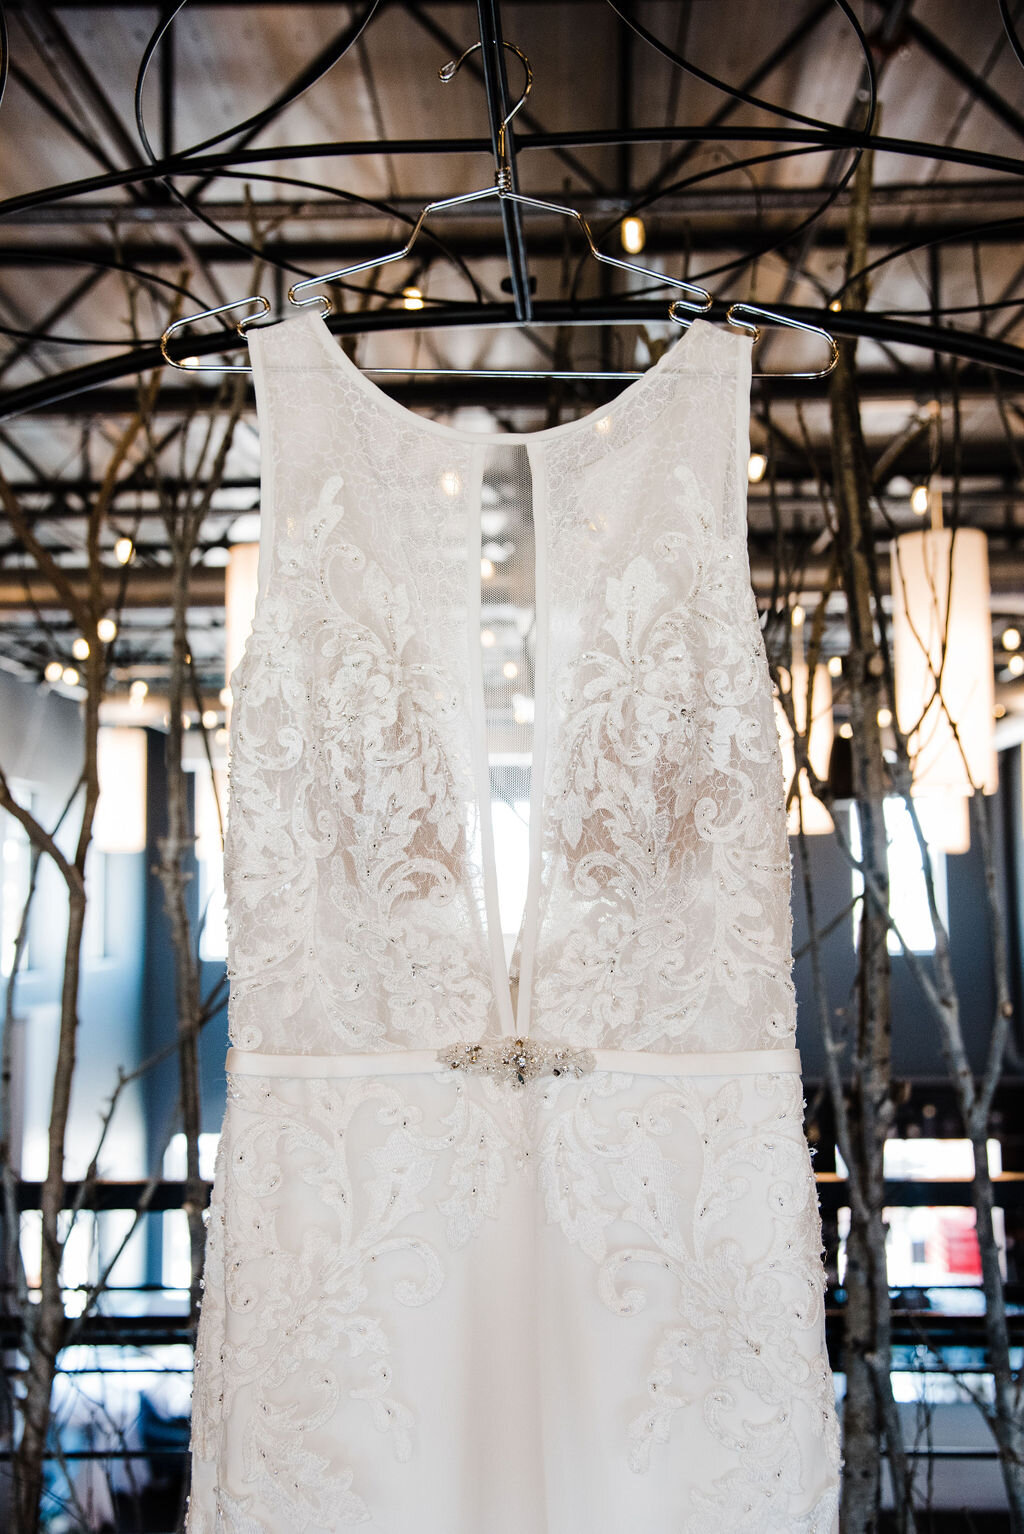 beautiful wedding gown hangs on a Moon Gate arch at a wedding venue in Iowa, a sparkling broach is at the waist, and overlays of scalloped lace designs or on the bodice and part of the long flowing skirt